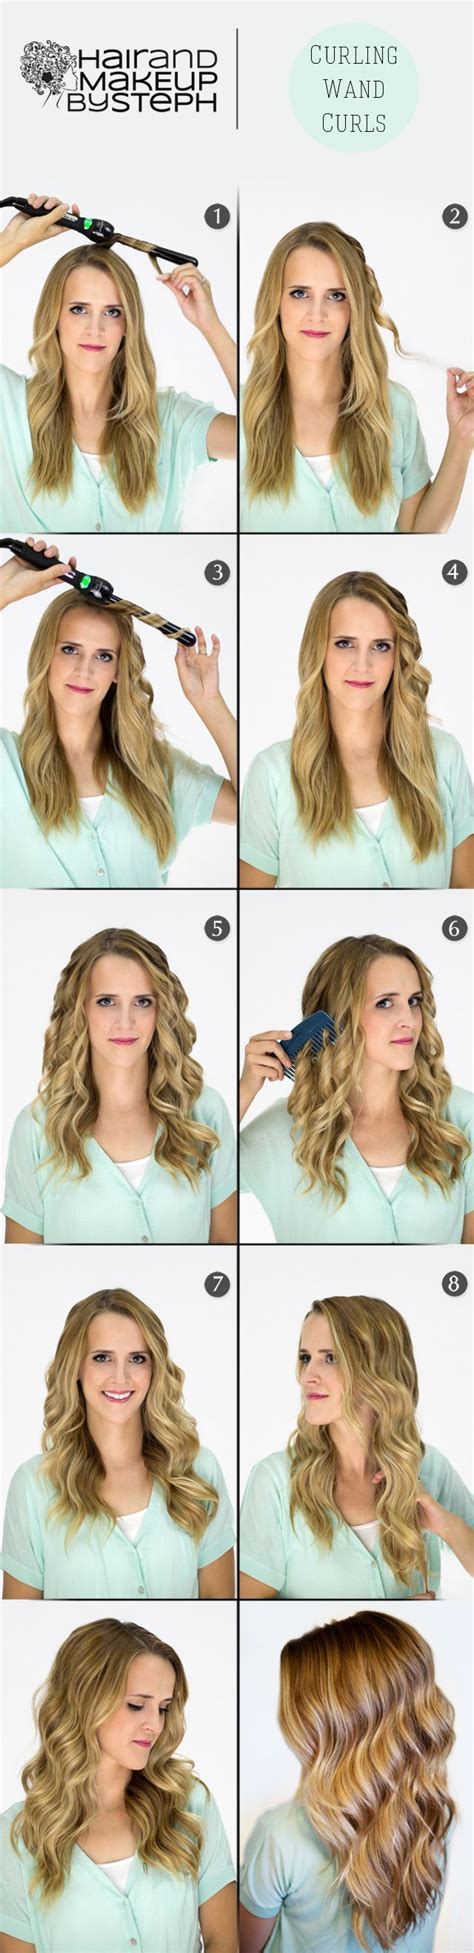 easy hairstyles using curling iron best 25 curling iron hairstyles ideas on pinterest how